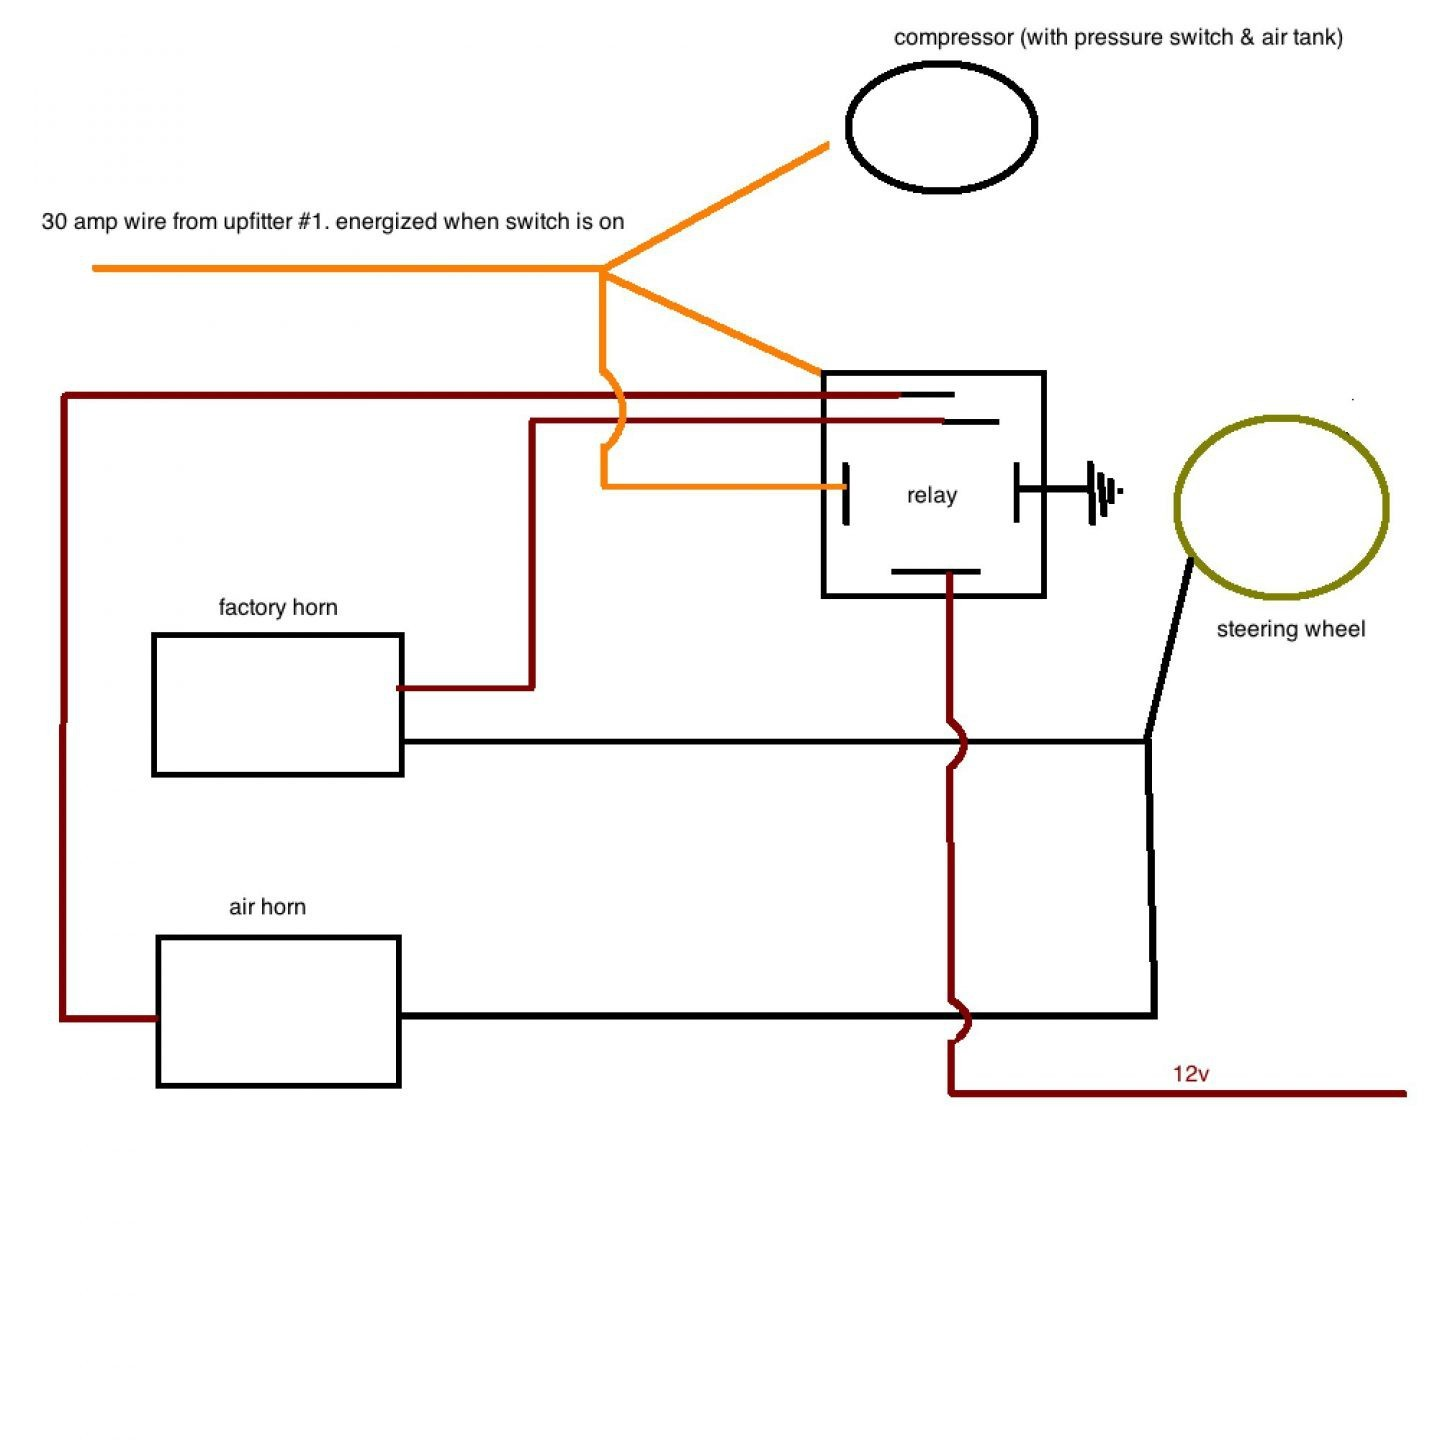 train horn plumbing diagram wiring diagram. Black Bedroom Furniture Sets. Home Design Ideas